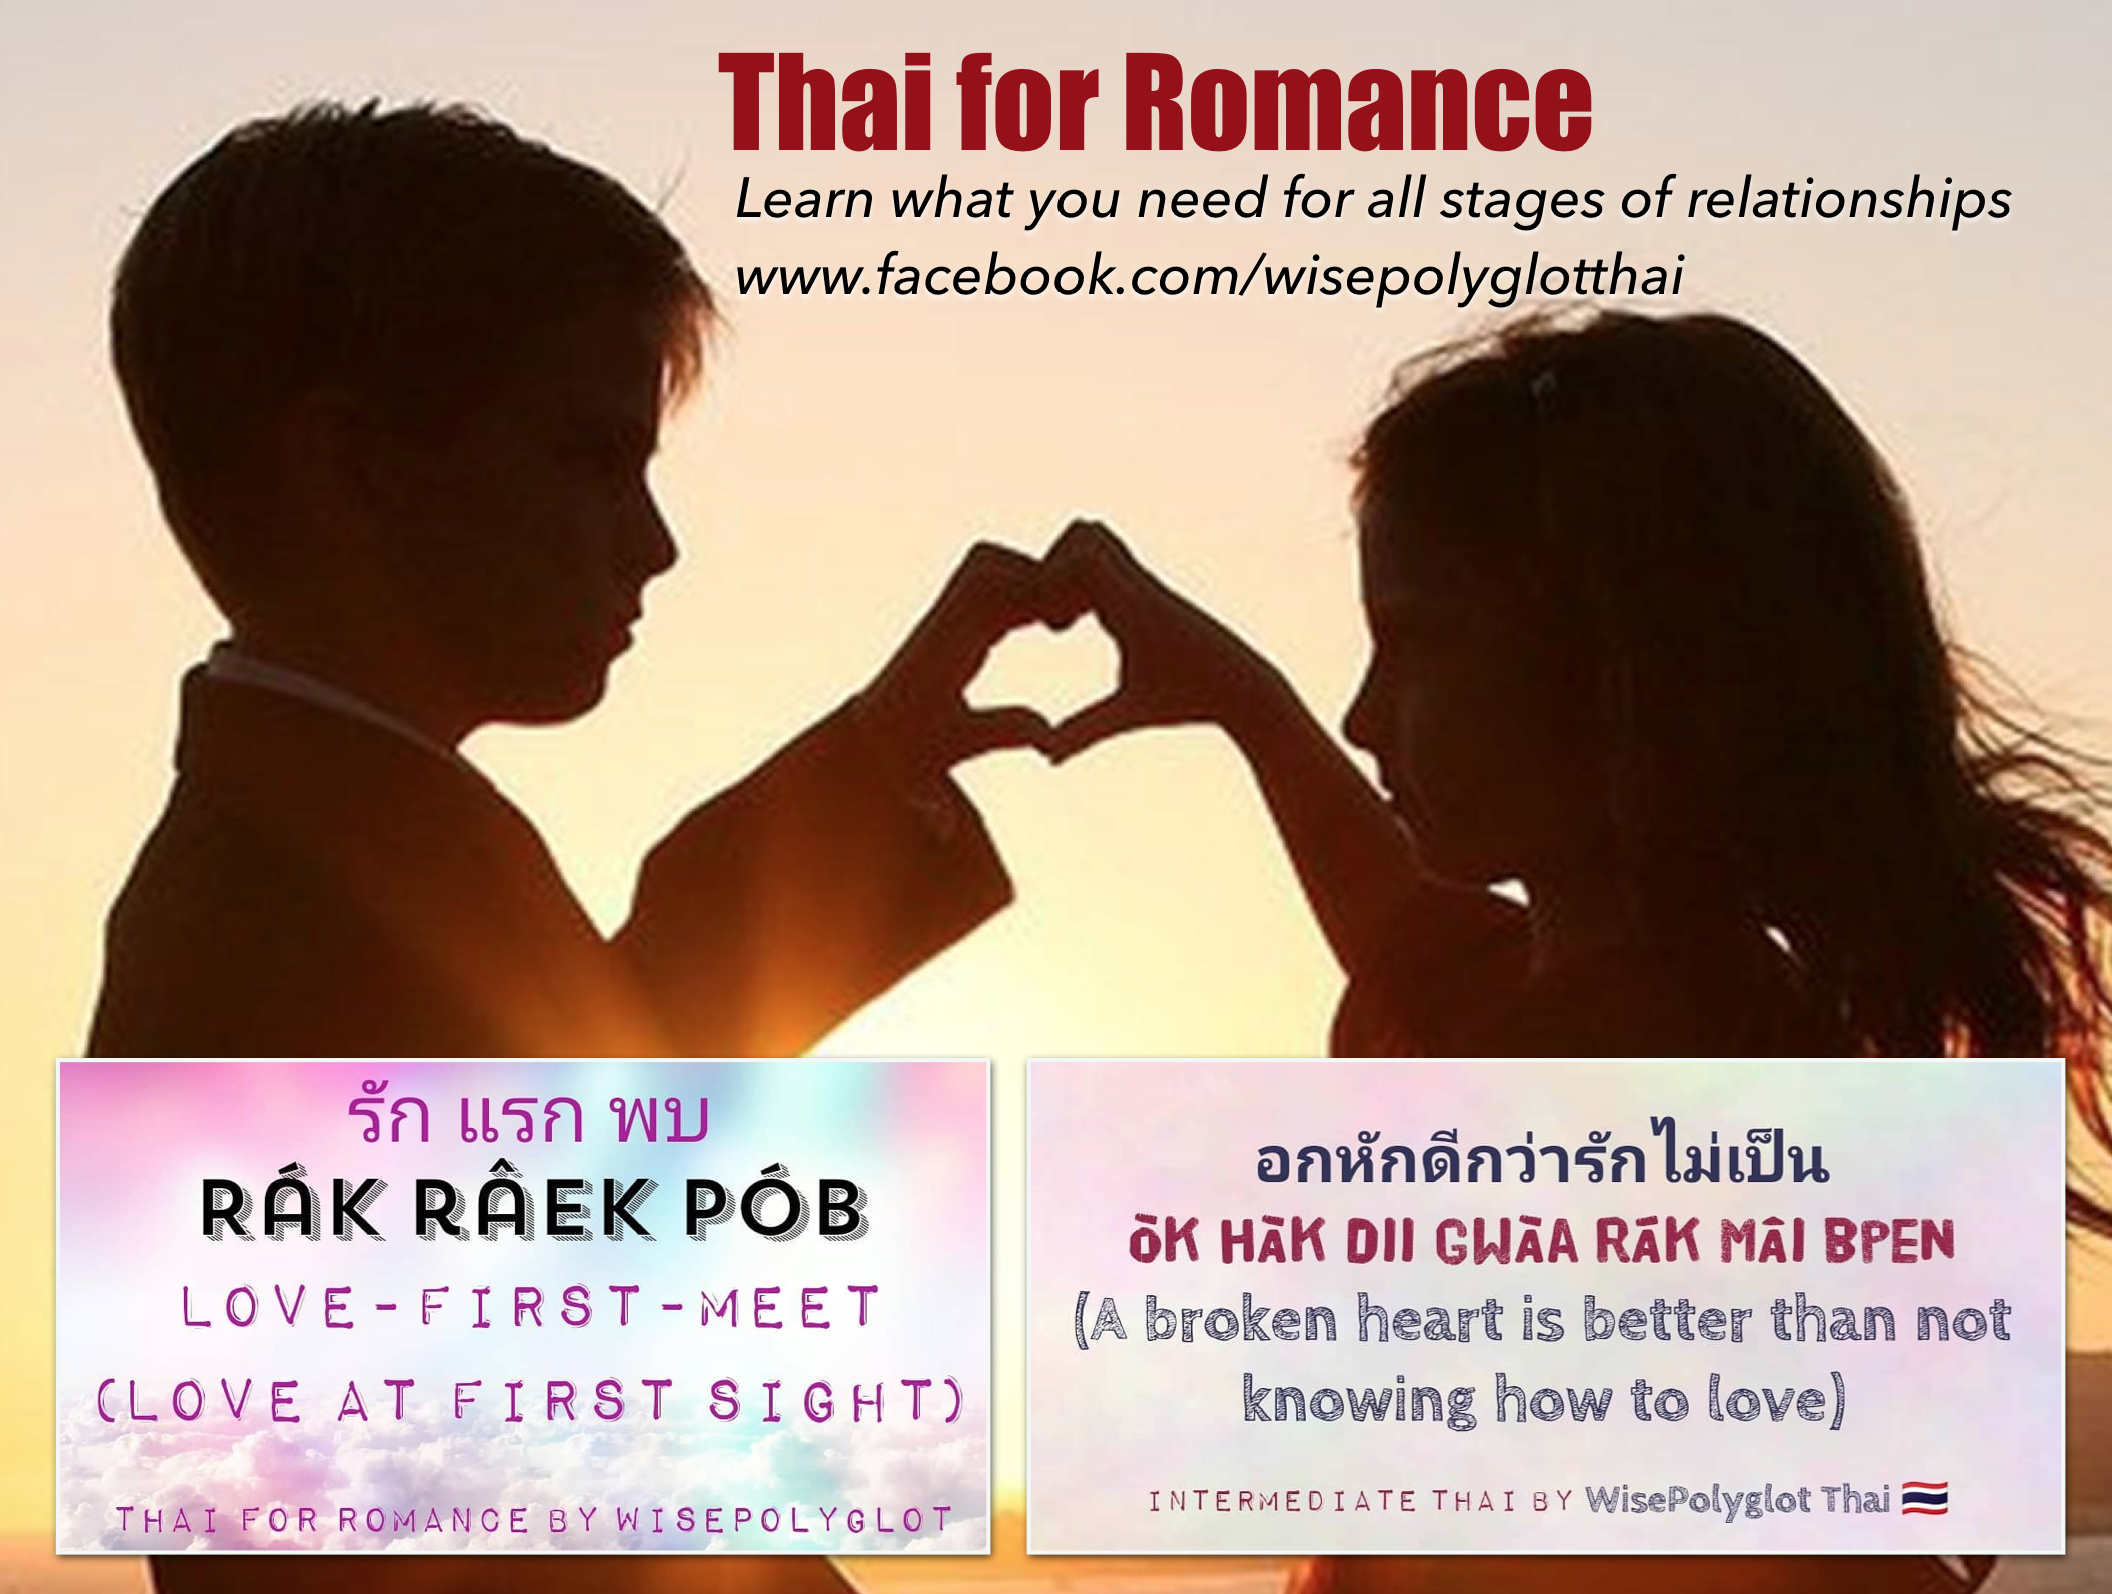 Wisepolyglot Thai language Romance 5 Noo